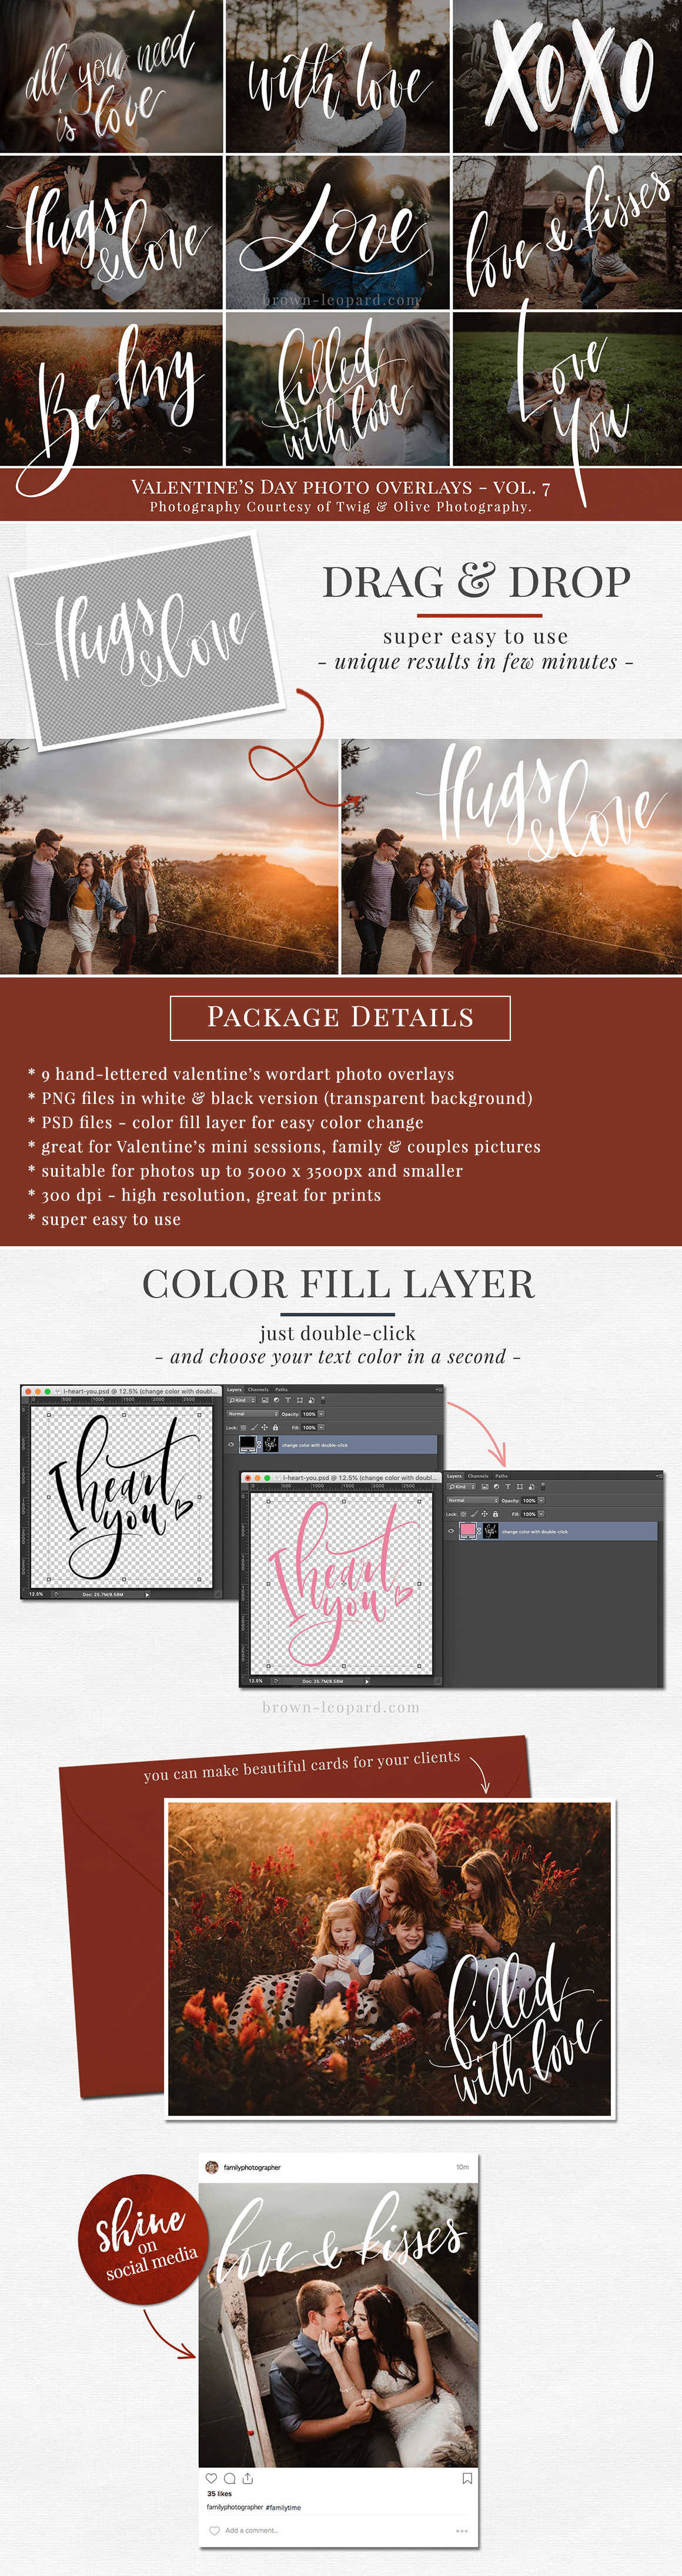 VALENTINE'S DAY PHOTO OVERLAYS VOL  7